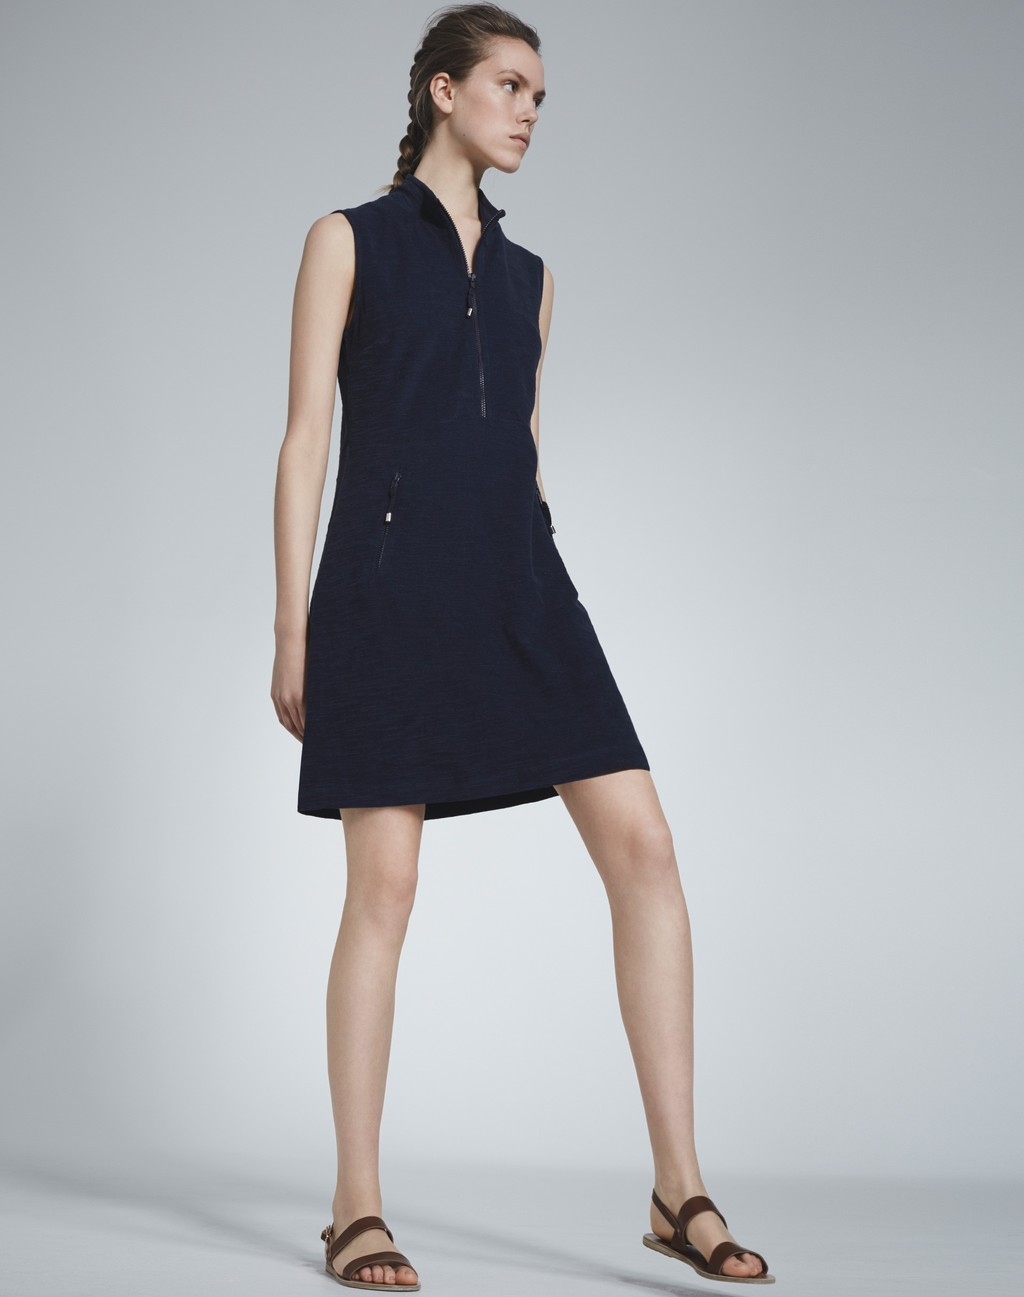 Towelling Dress Navy - style: shirt; neckline: shirt collar/peter pan/zip with opening; pattern: plain; sleeve style: sleeveless; predominant colour: navy; occasions: casual; length: just above the knee; fit: body skimming; fibres: cotton - 100%; sleeve length: sleeveless; pattern type: fabric; texture group: other - light to midweight; season: s/s 2016